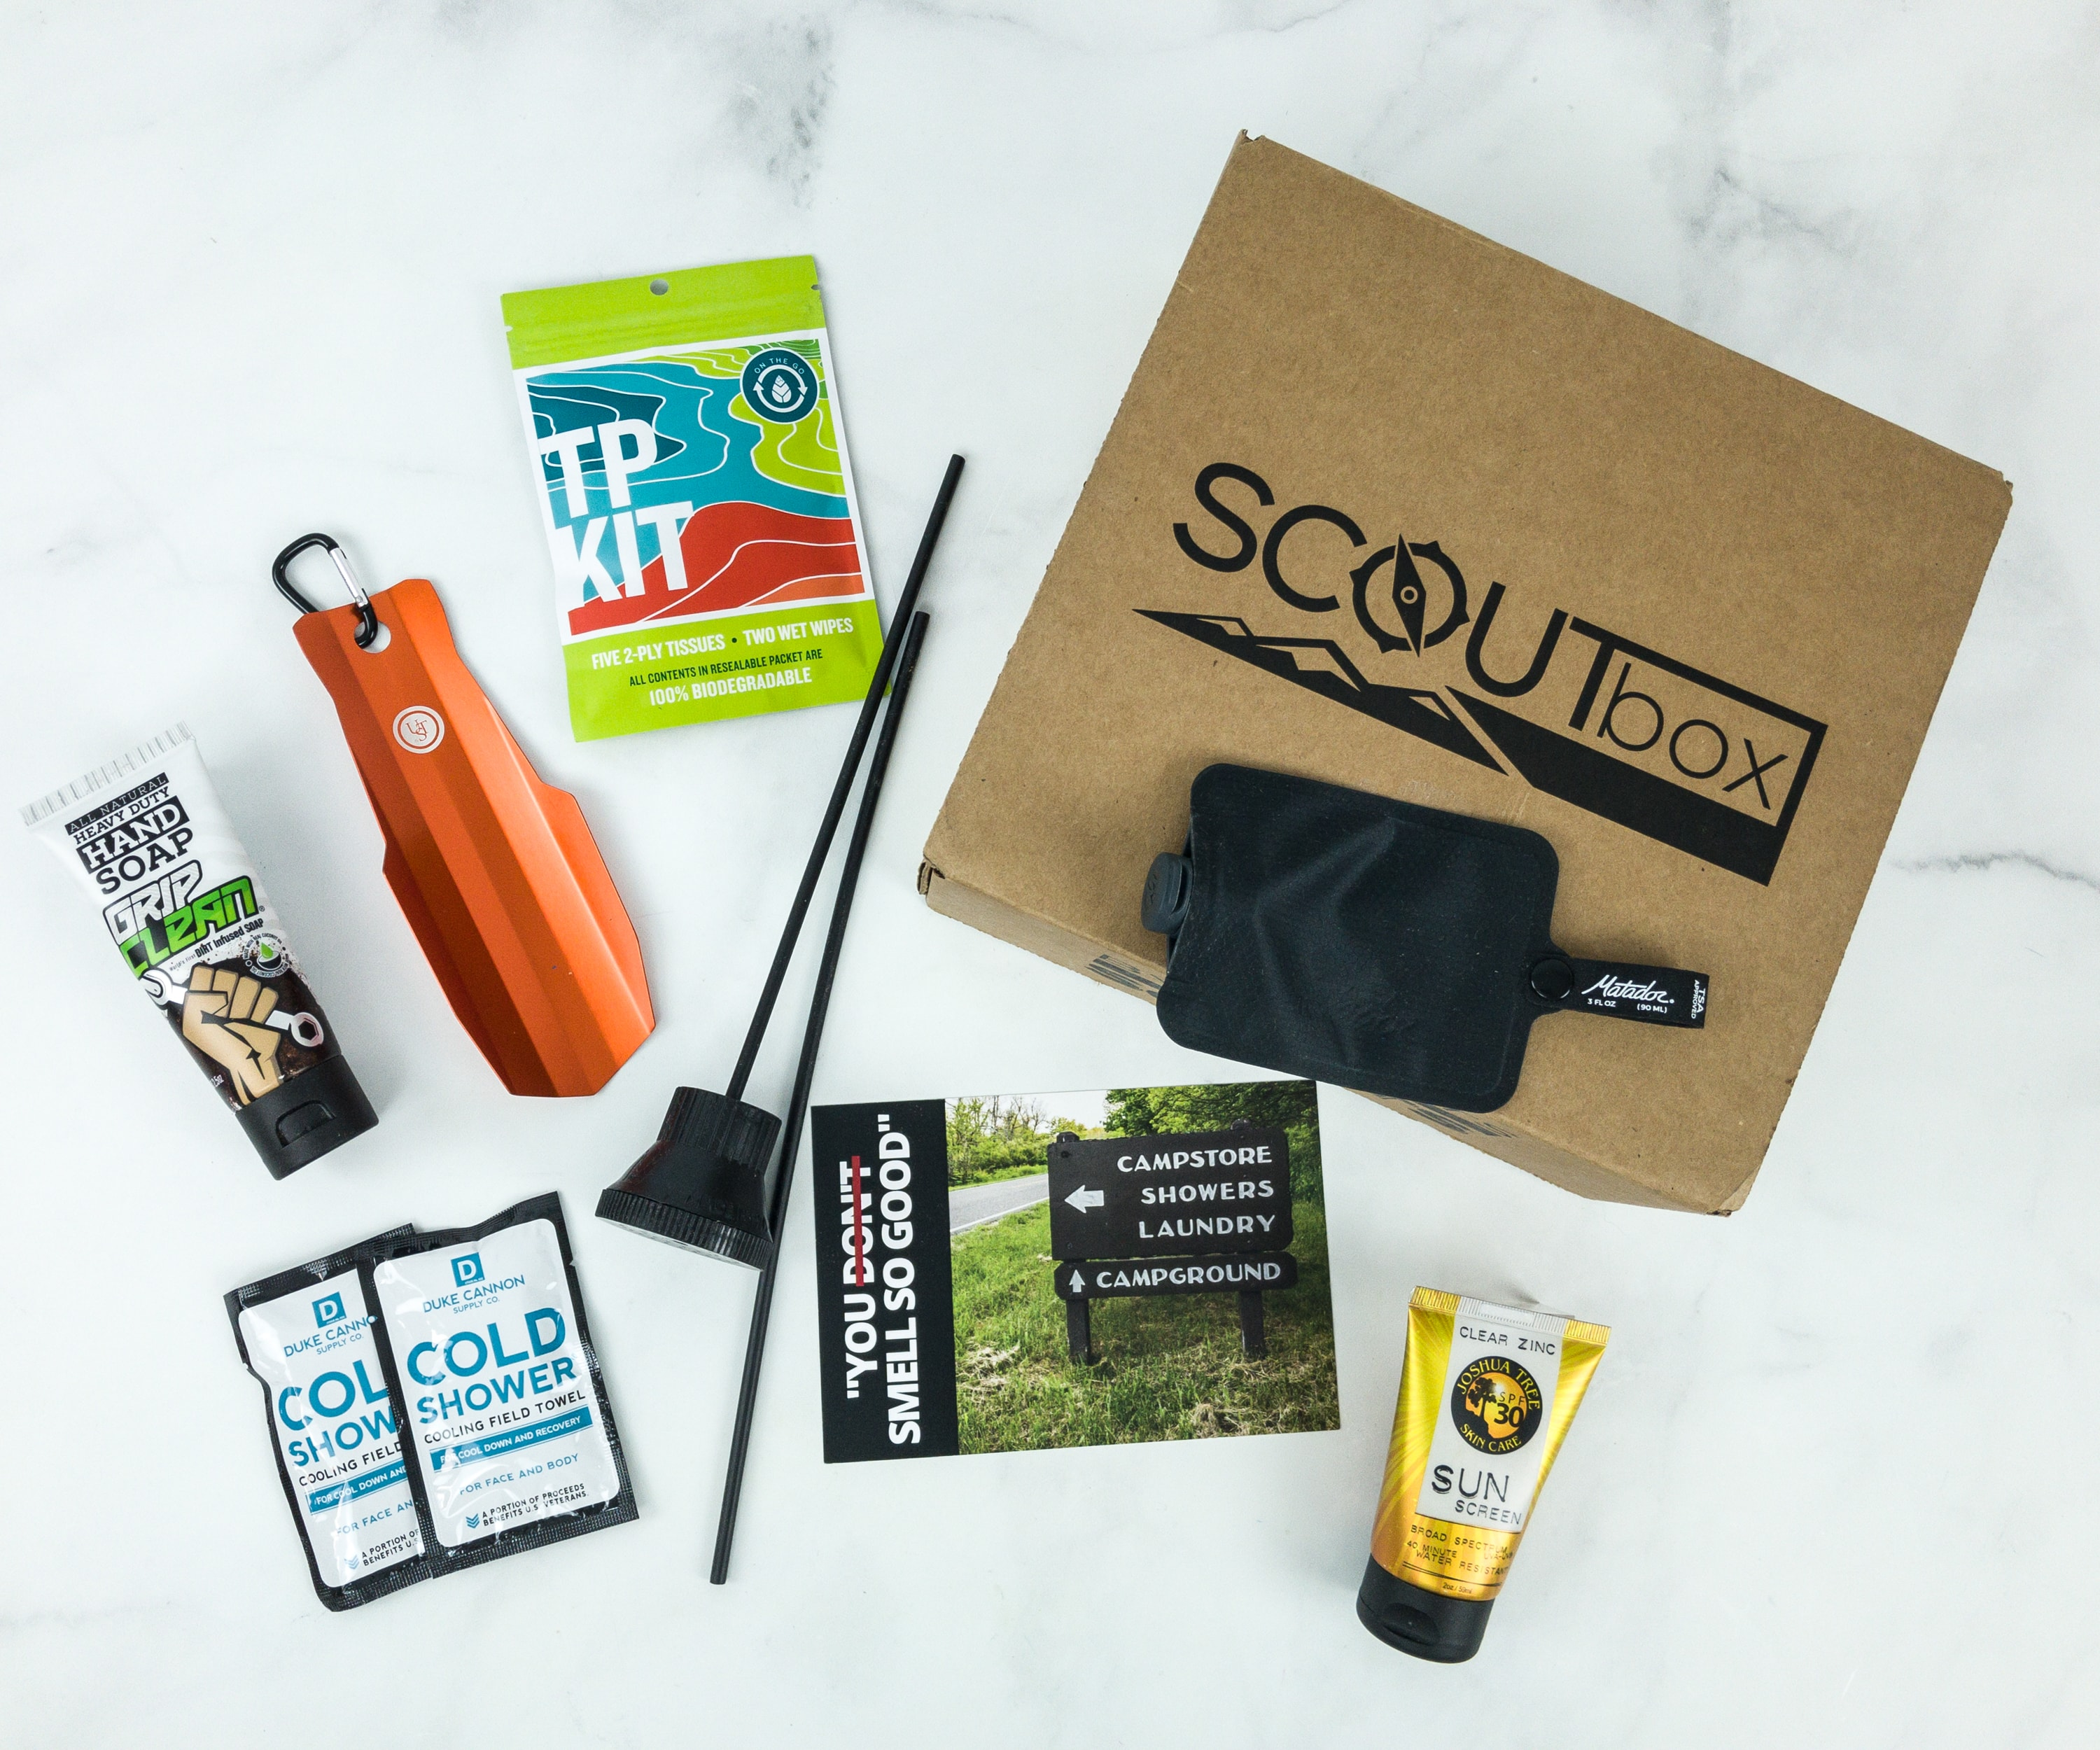 SCOUTbox January 2019 Subscription Box Review + Coupon